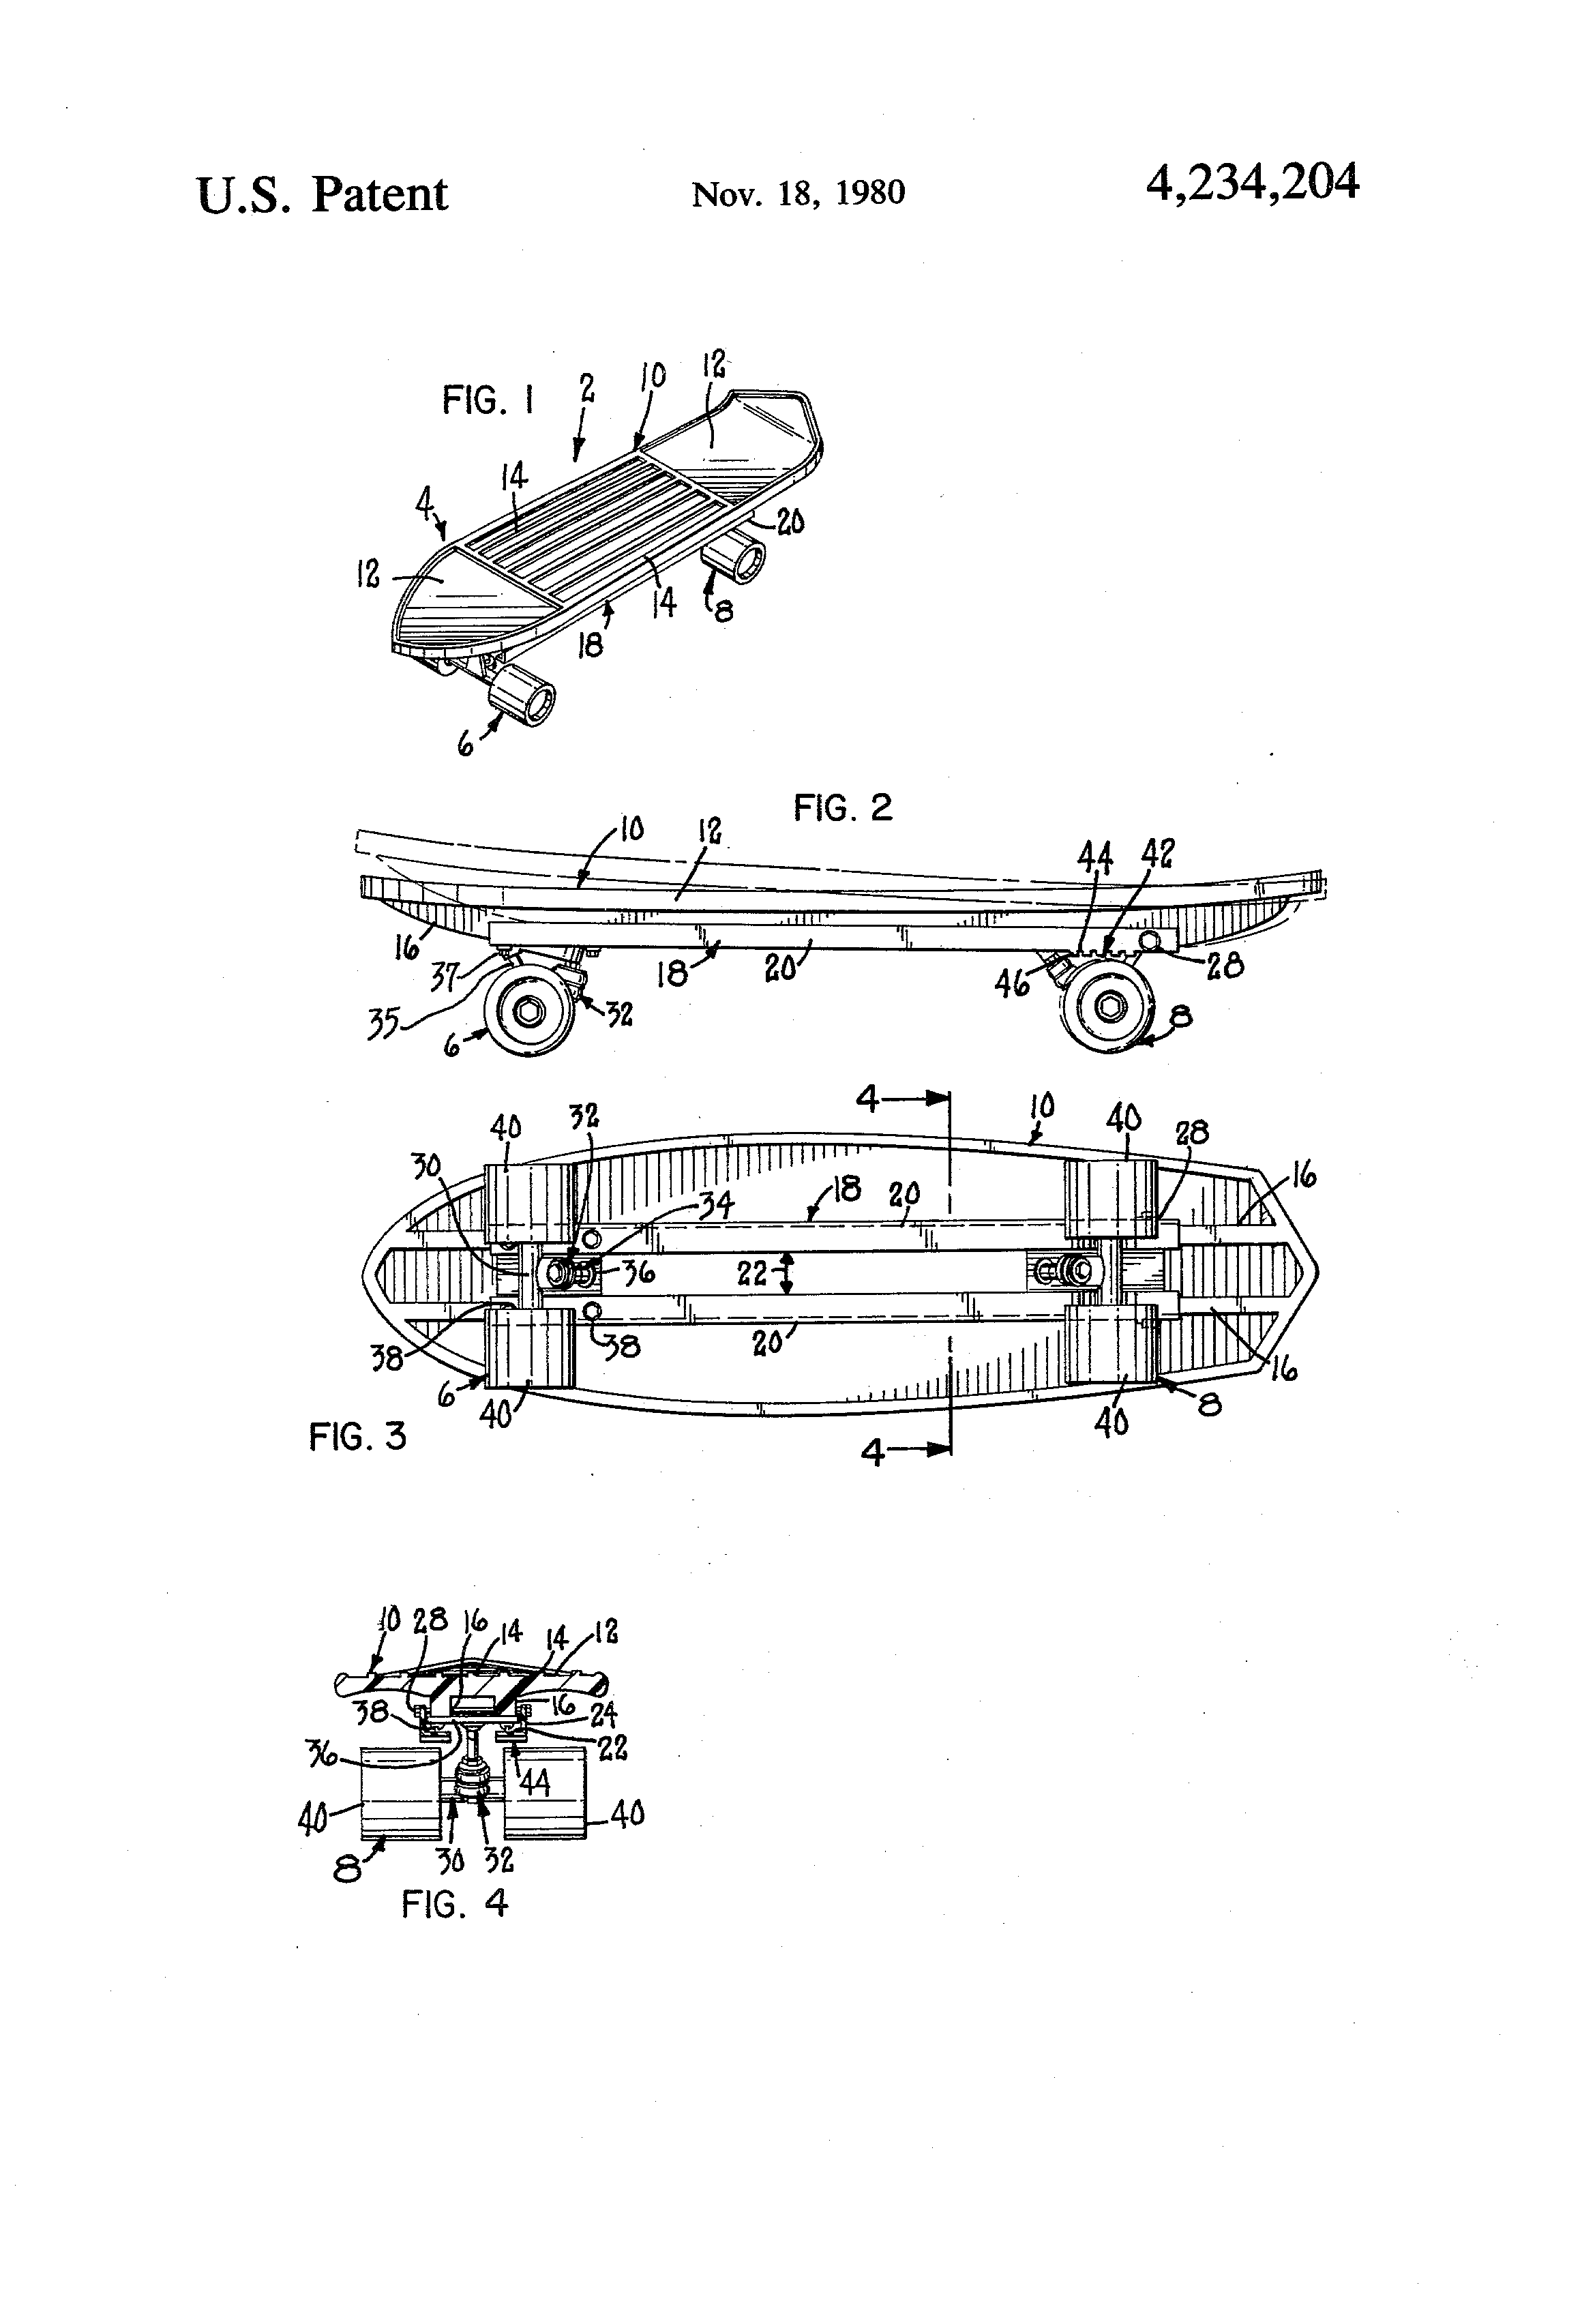 Skate Patents & Inventions